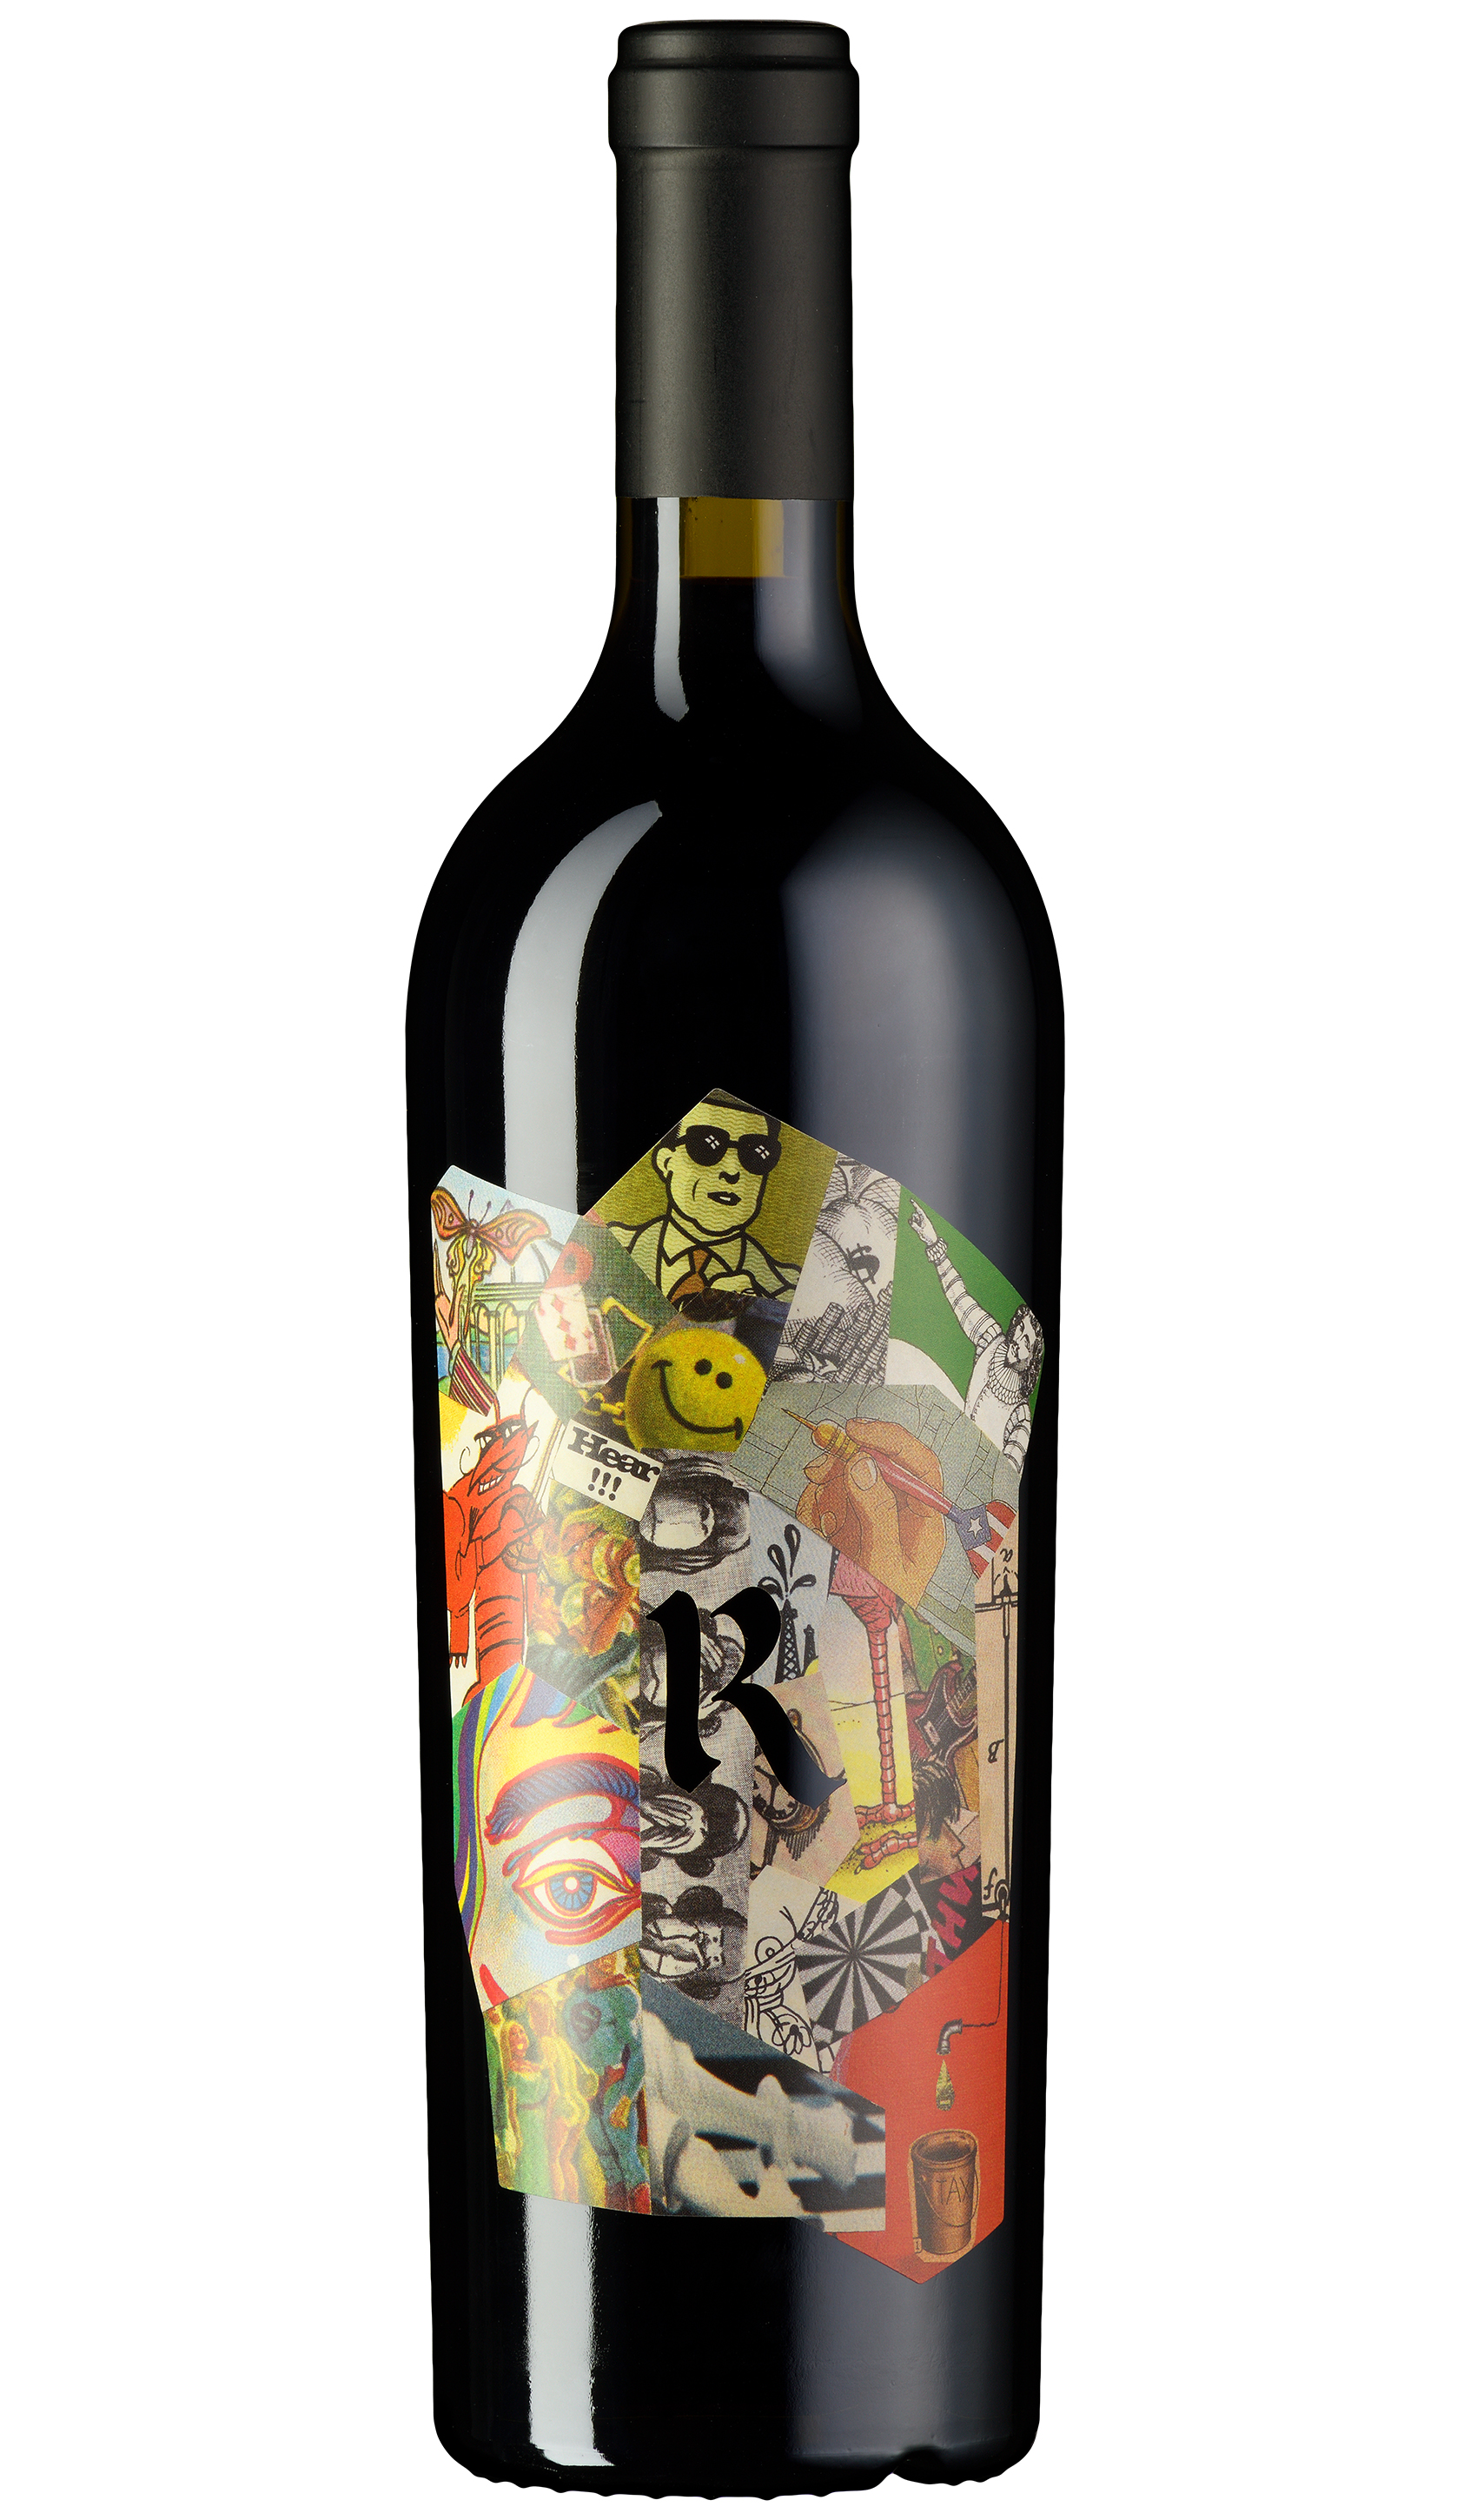 The Absurd, Realm Cellars 2014